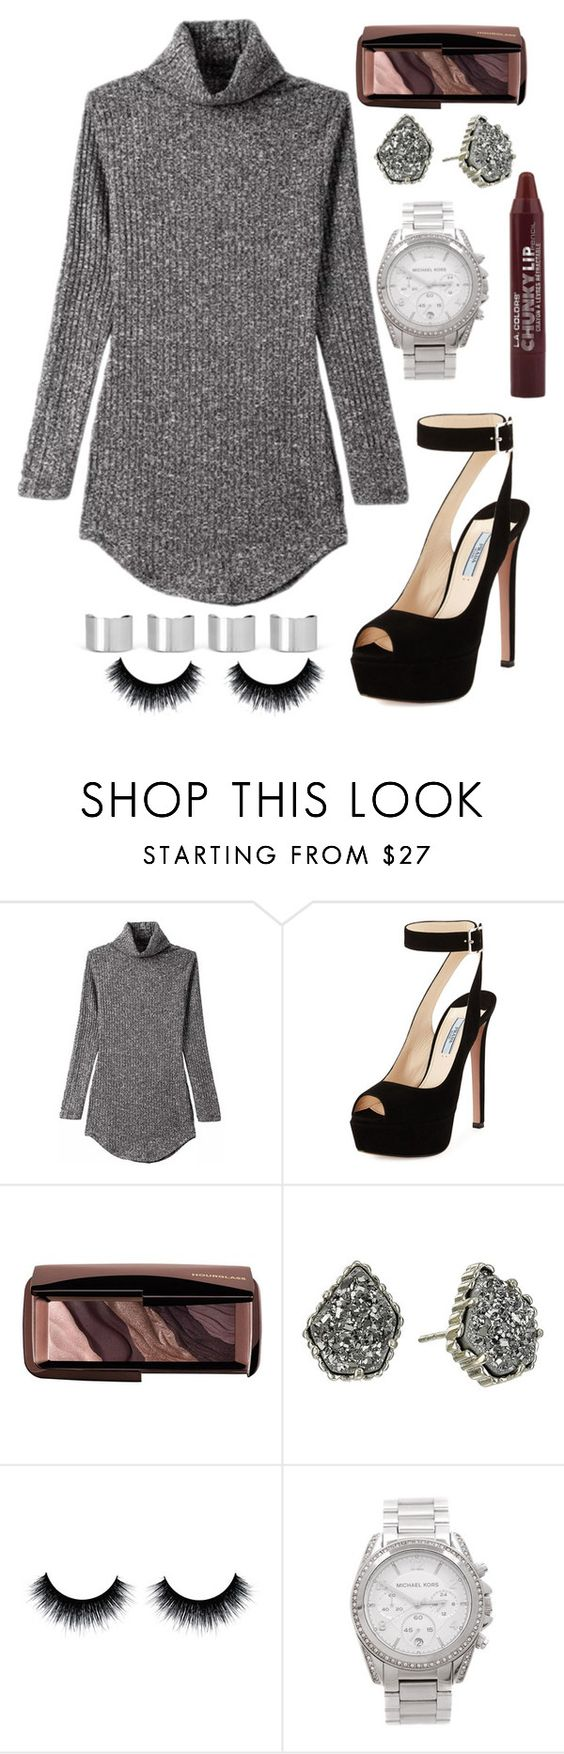 """""""Sexy sweater dress"""" by mary-elizabeth-1998 ❤ liked on Polyvore featuring Prada, Hourglass Cosmetics, Kendra Scott, Michael Kors and Maison Margiela"""